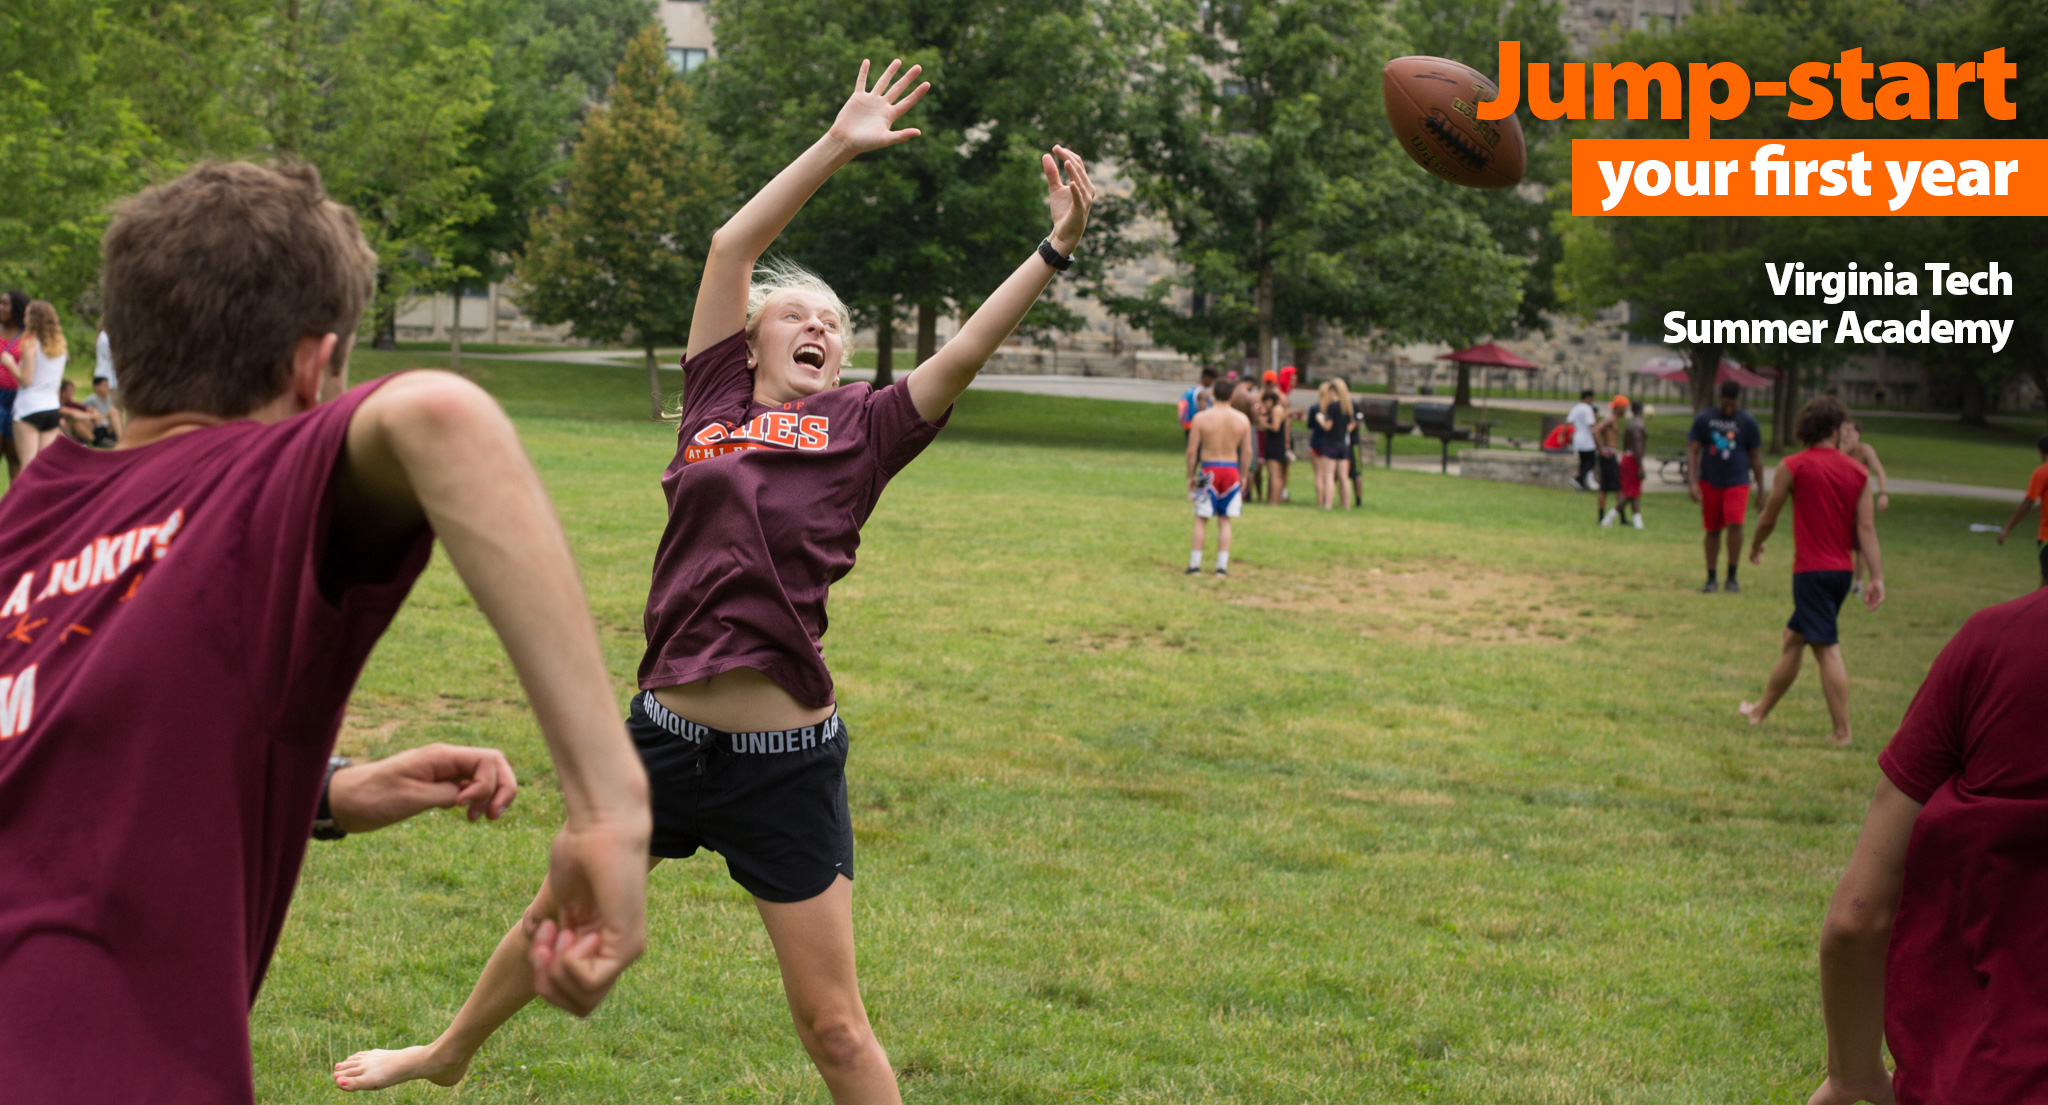 Catch the Hokie spirit!